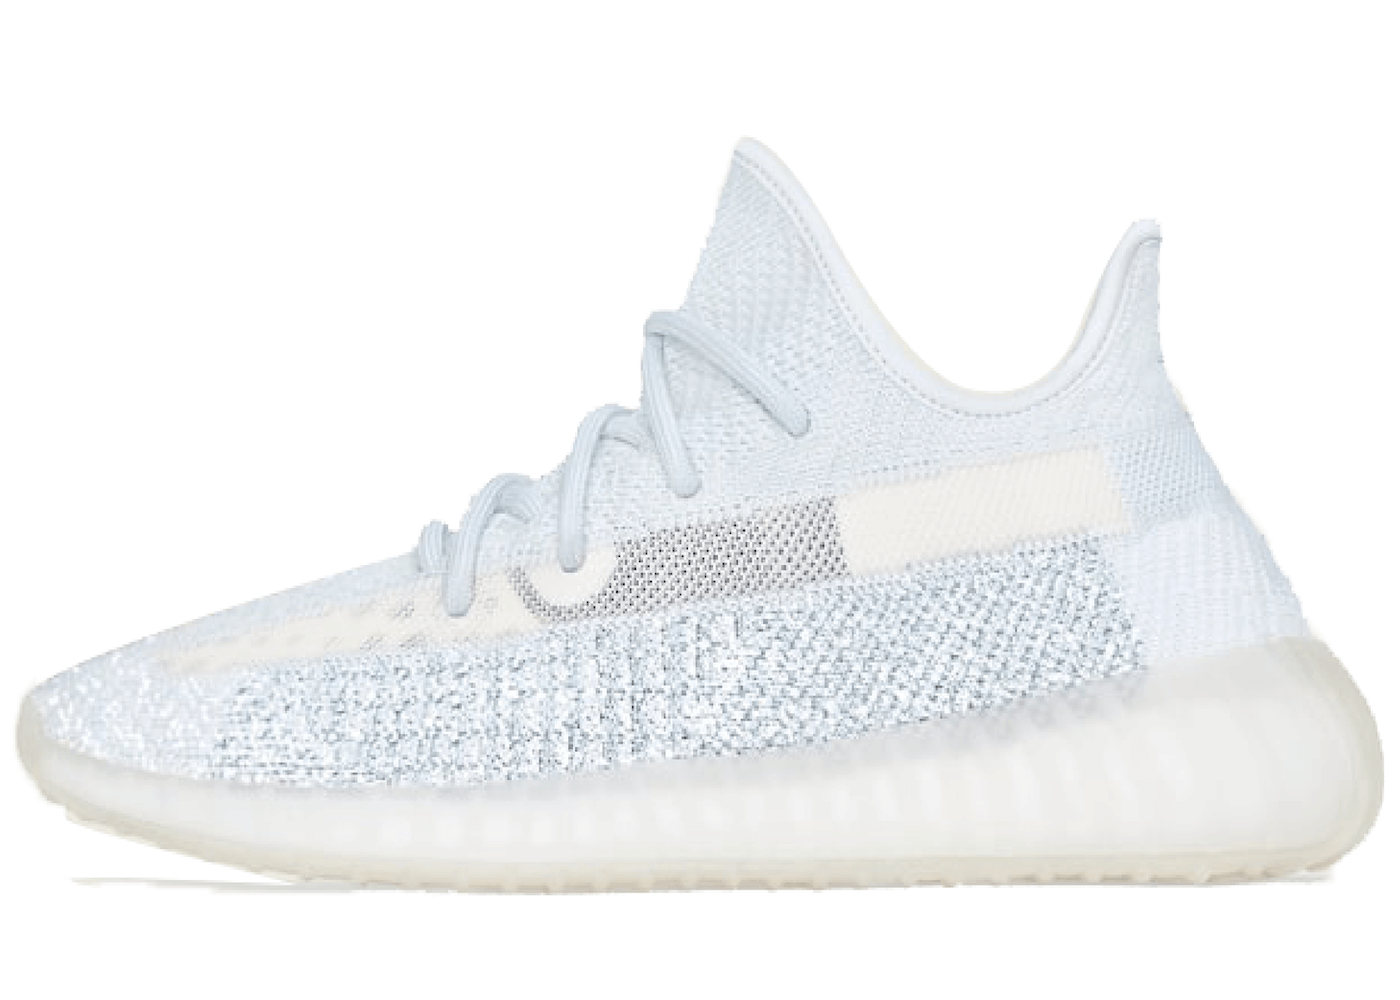 Adidas Yeezy Boost 350 V2 Cloud White